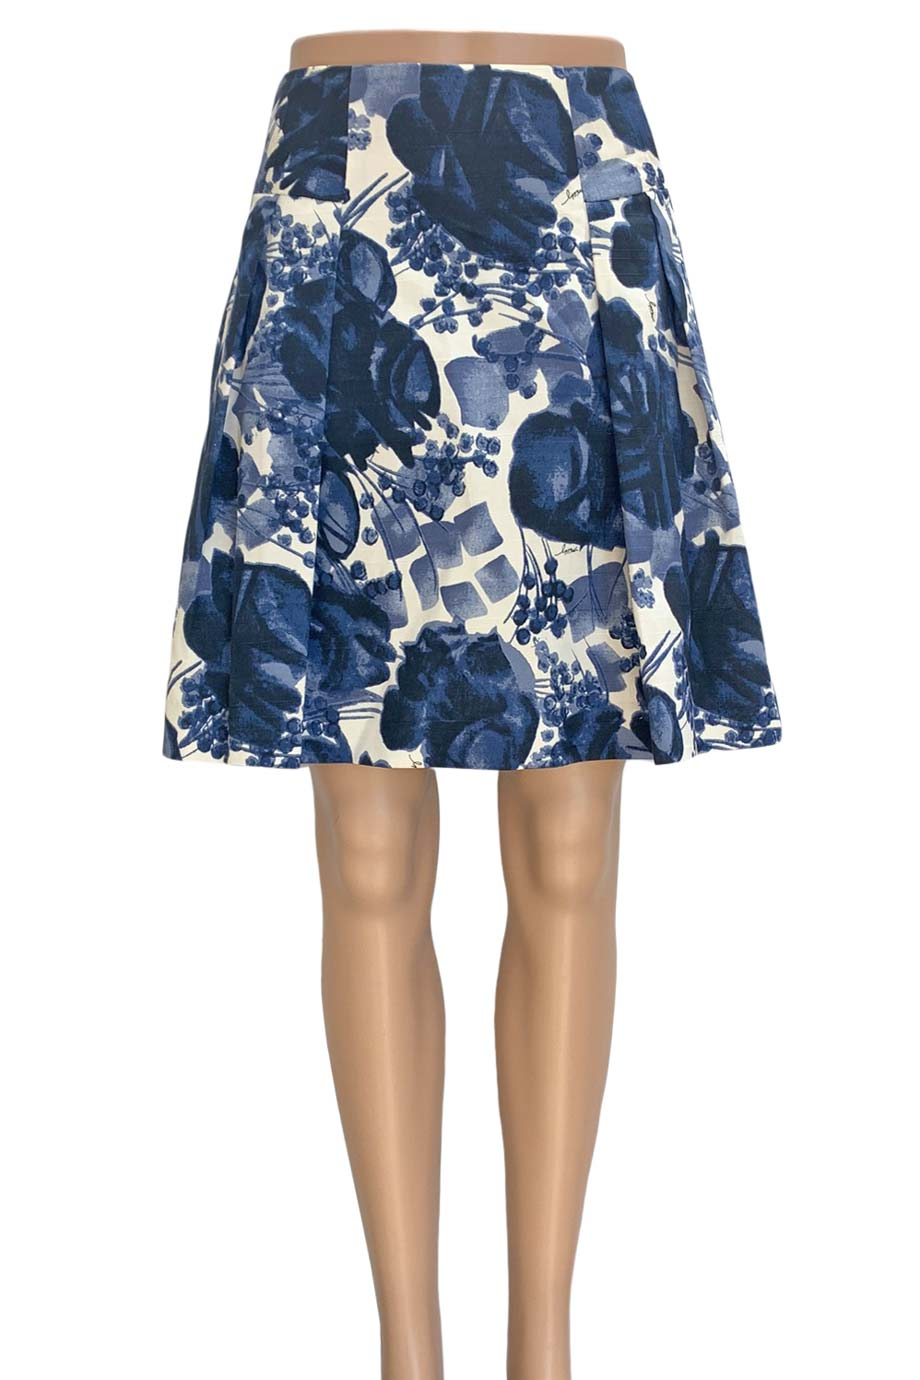 Milly Navy Blue Floral Print Cotton Pleated A-Line Skirt / Sz 6